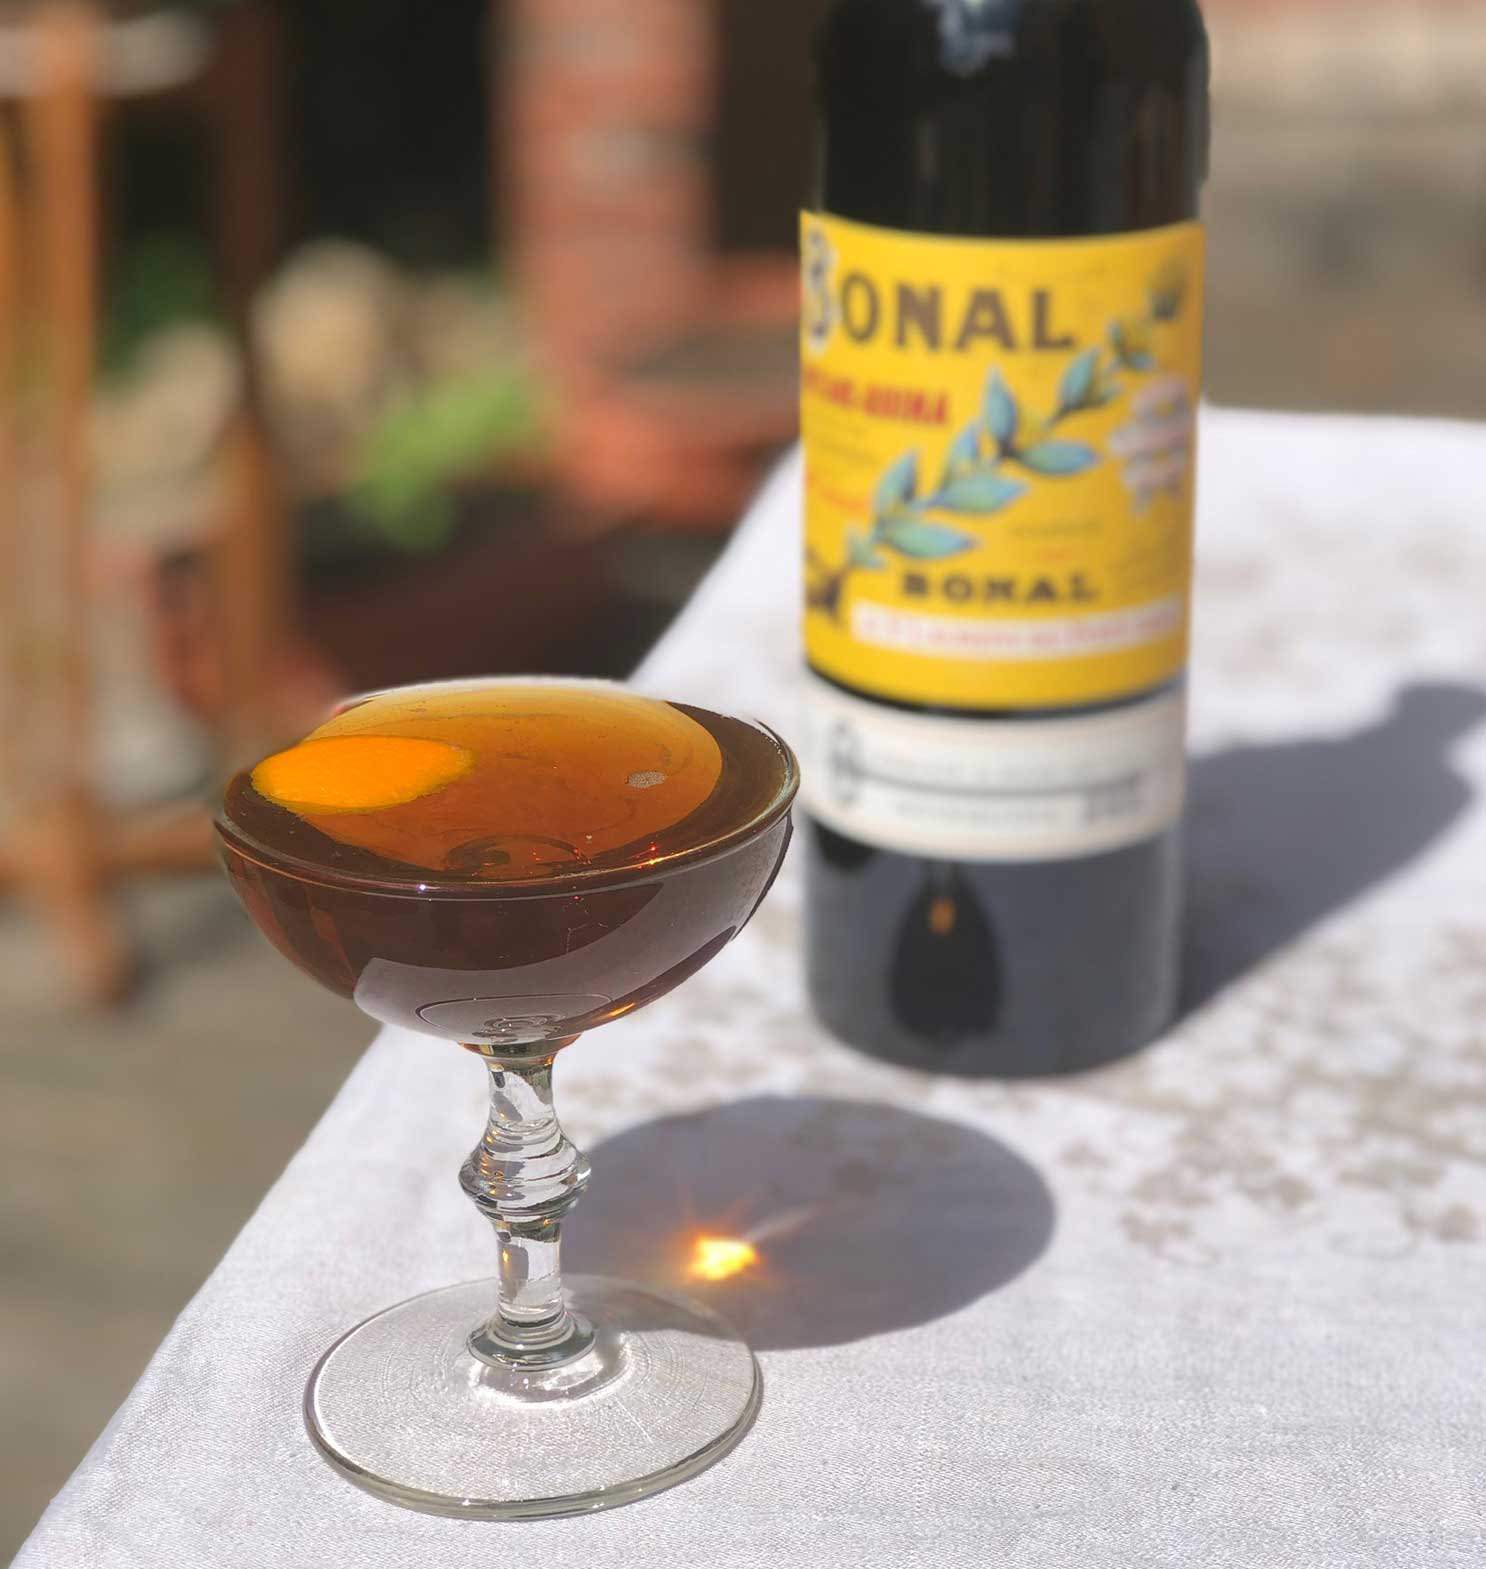 An example of the Bonal & Rye, the mixed drink (cocktail), by Todd Smith, San Francisco, featuring rye whiskey, Bonal Gentiane-Quina, orange bitters, and Angostura bitters